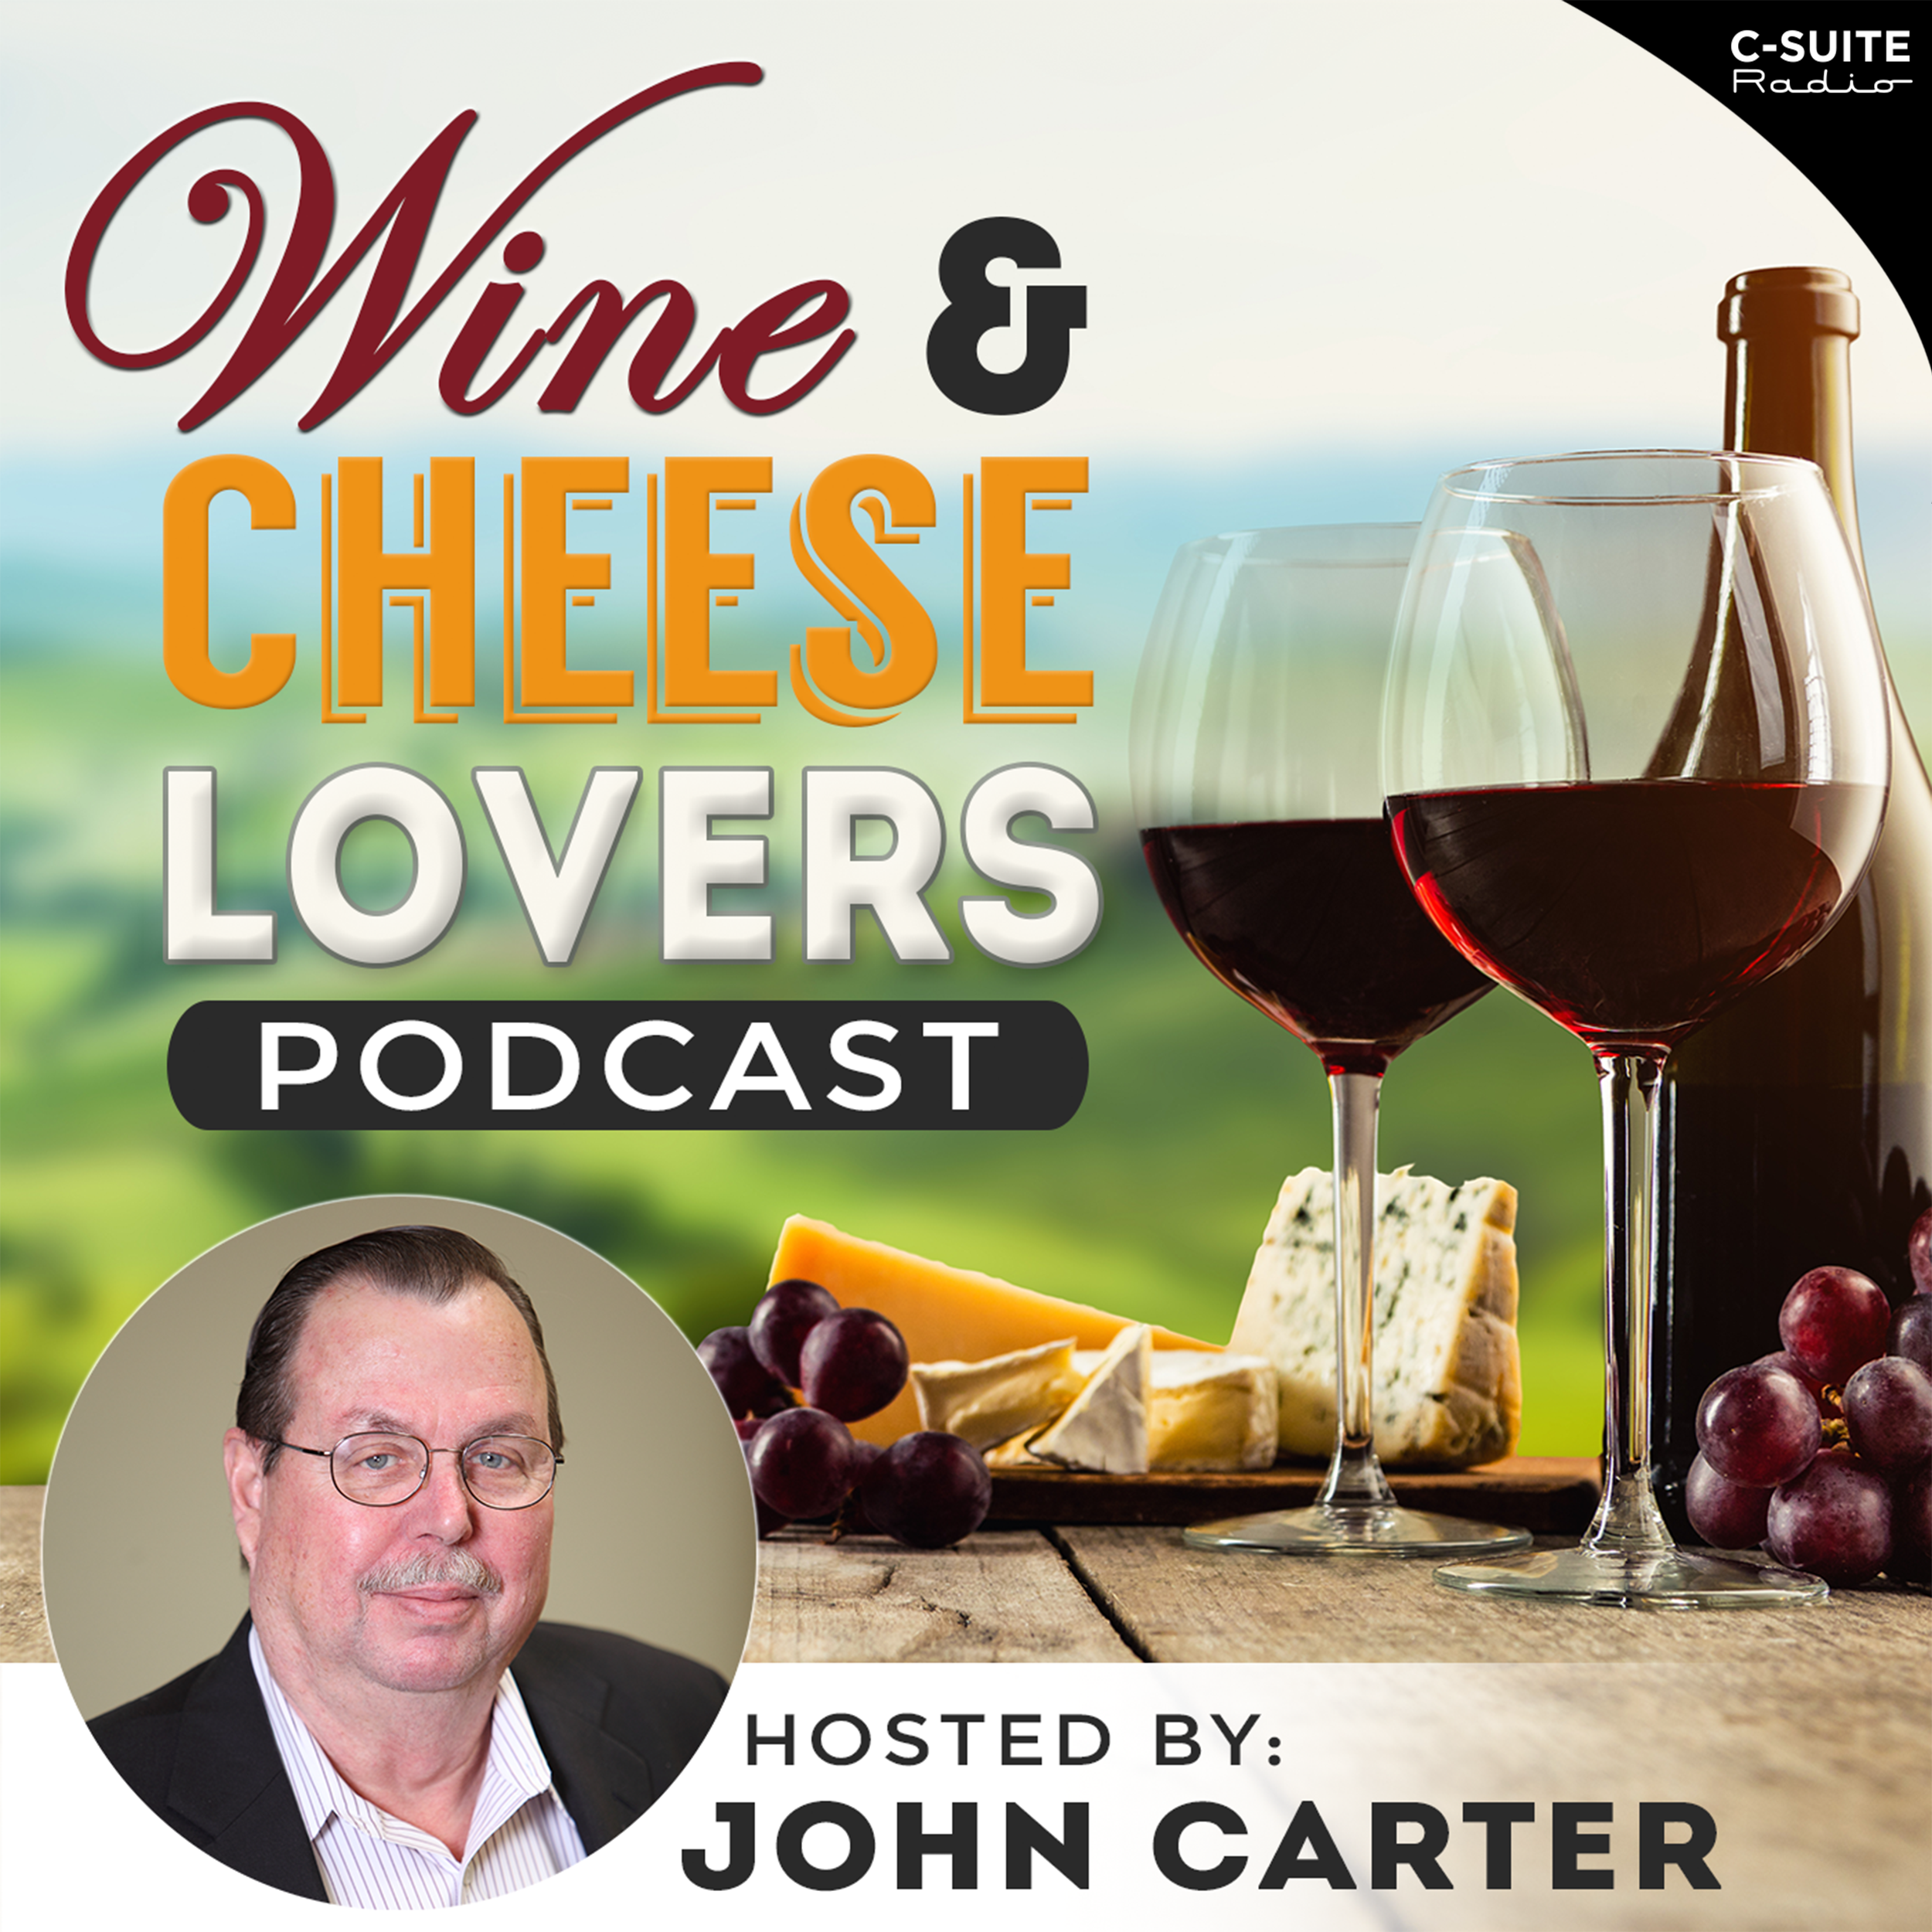 Wine and Cheese Lovers Podcast